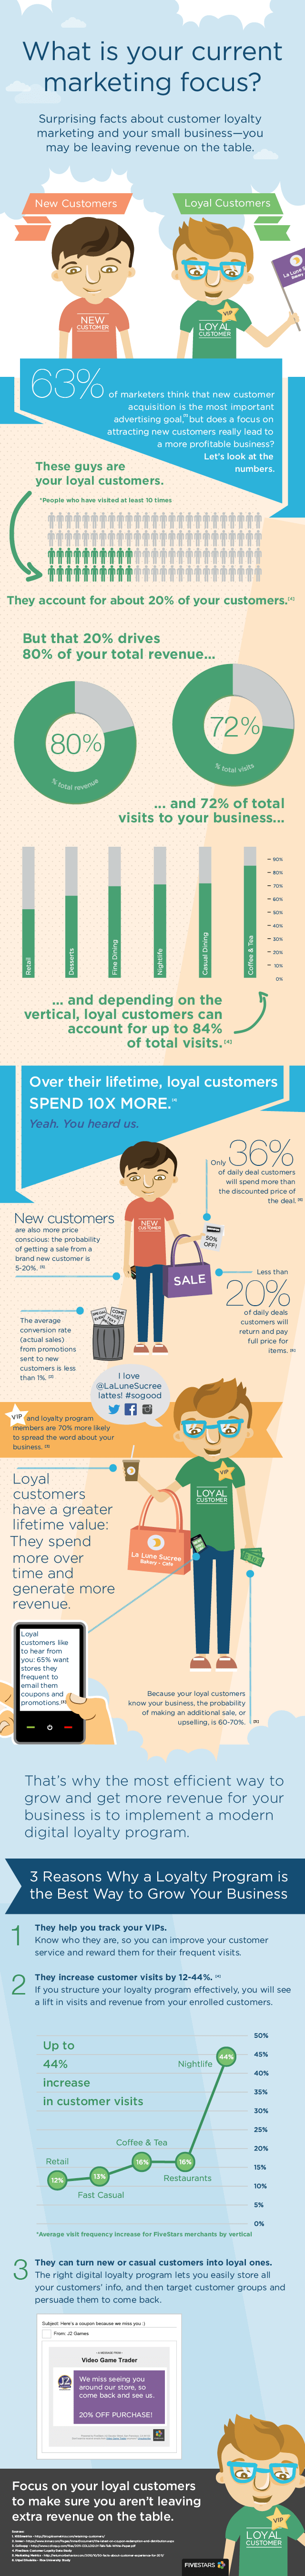 Loyal customers infographic